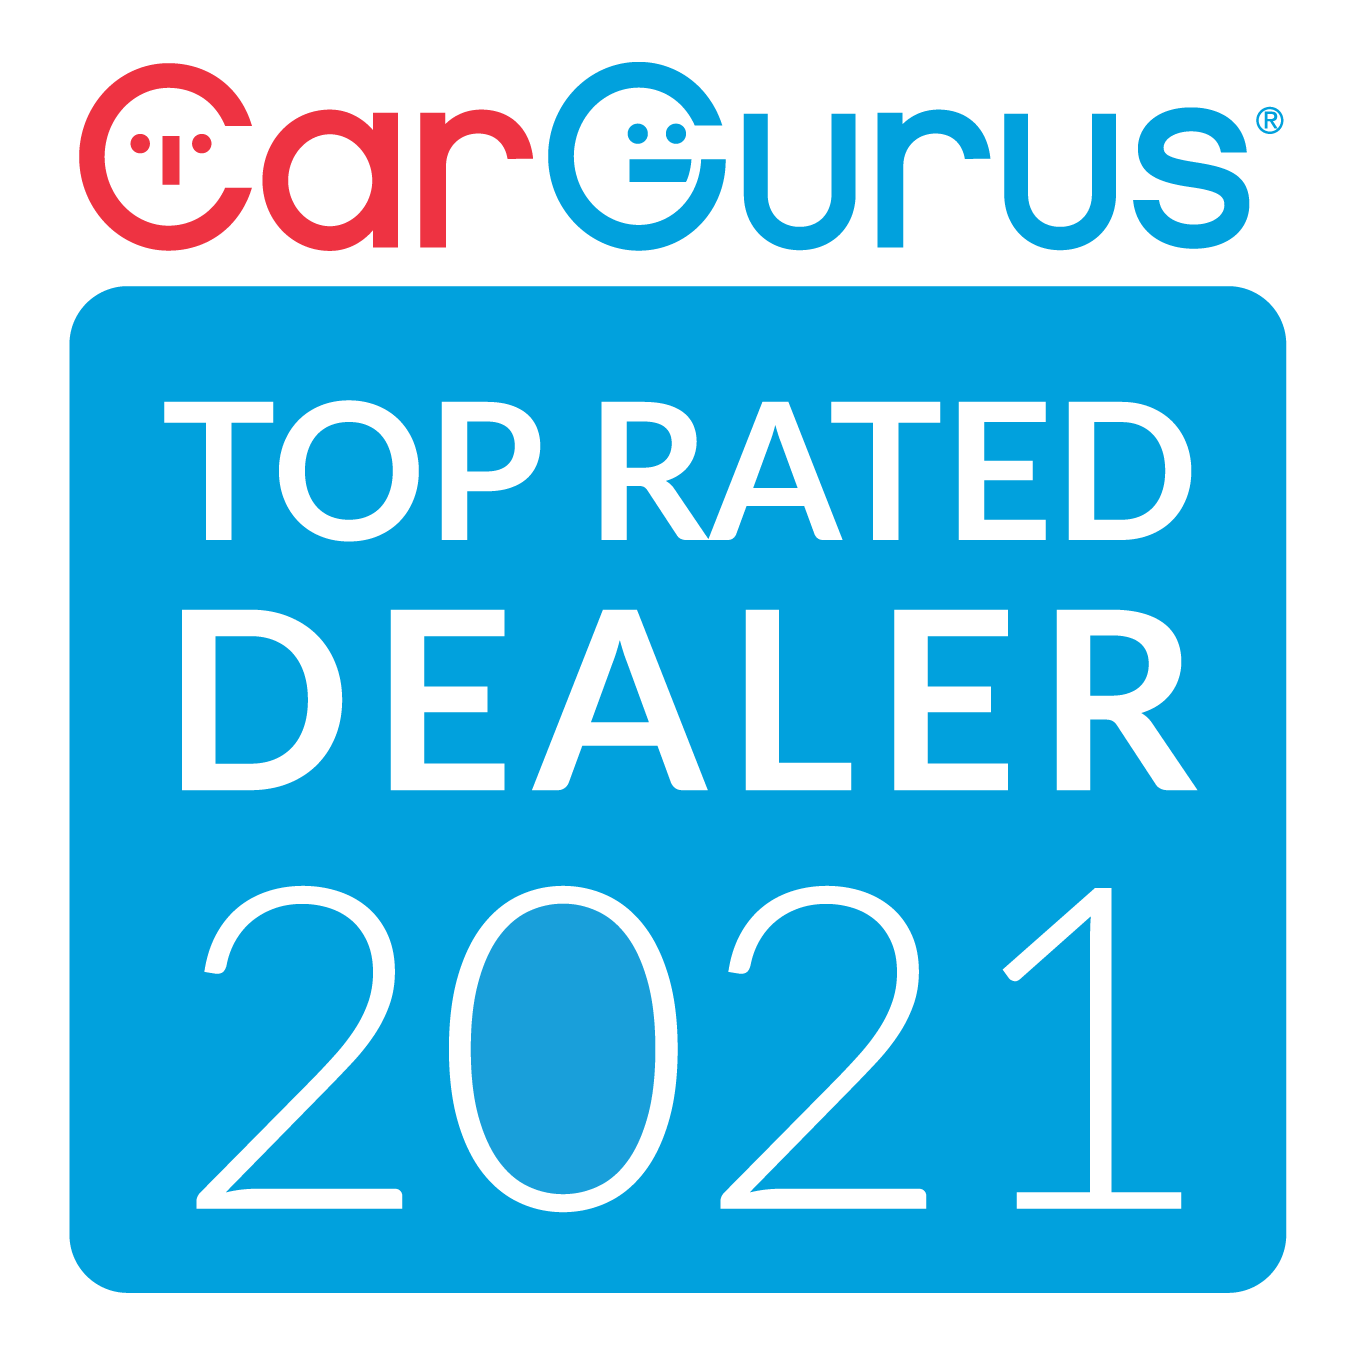 Car Guru Top Rated Dealer 2021